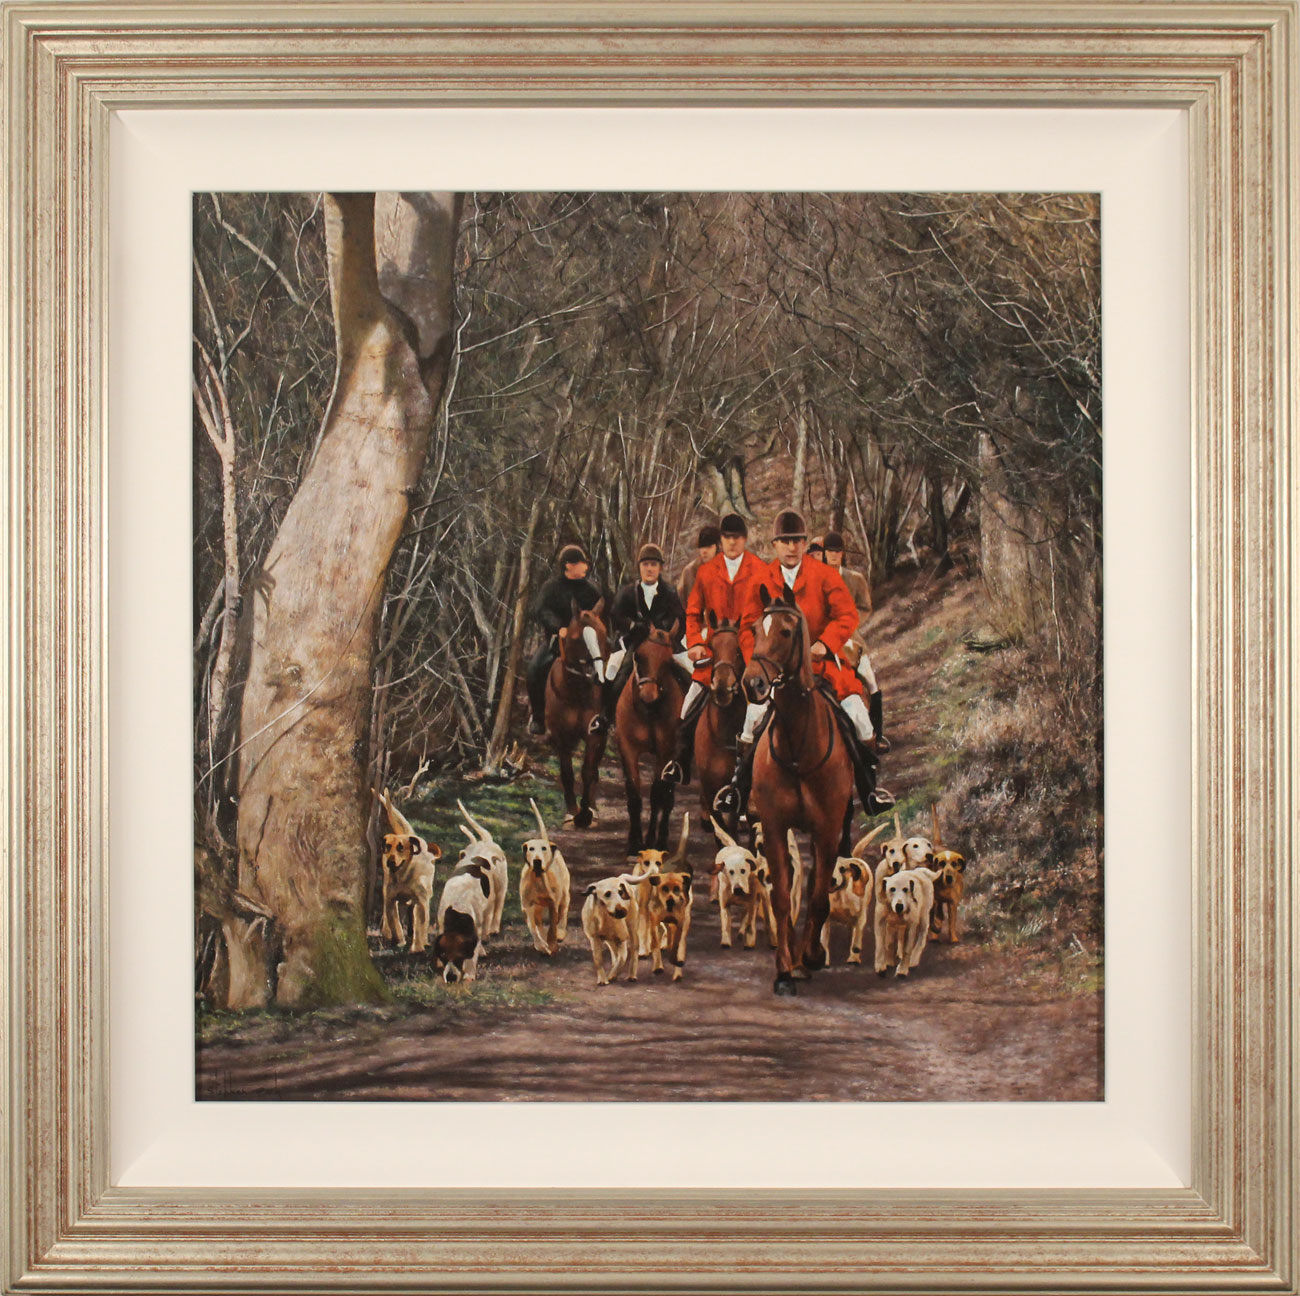 Stephen Park, Original oil painting on panel, The Hunt Click to enlarge